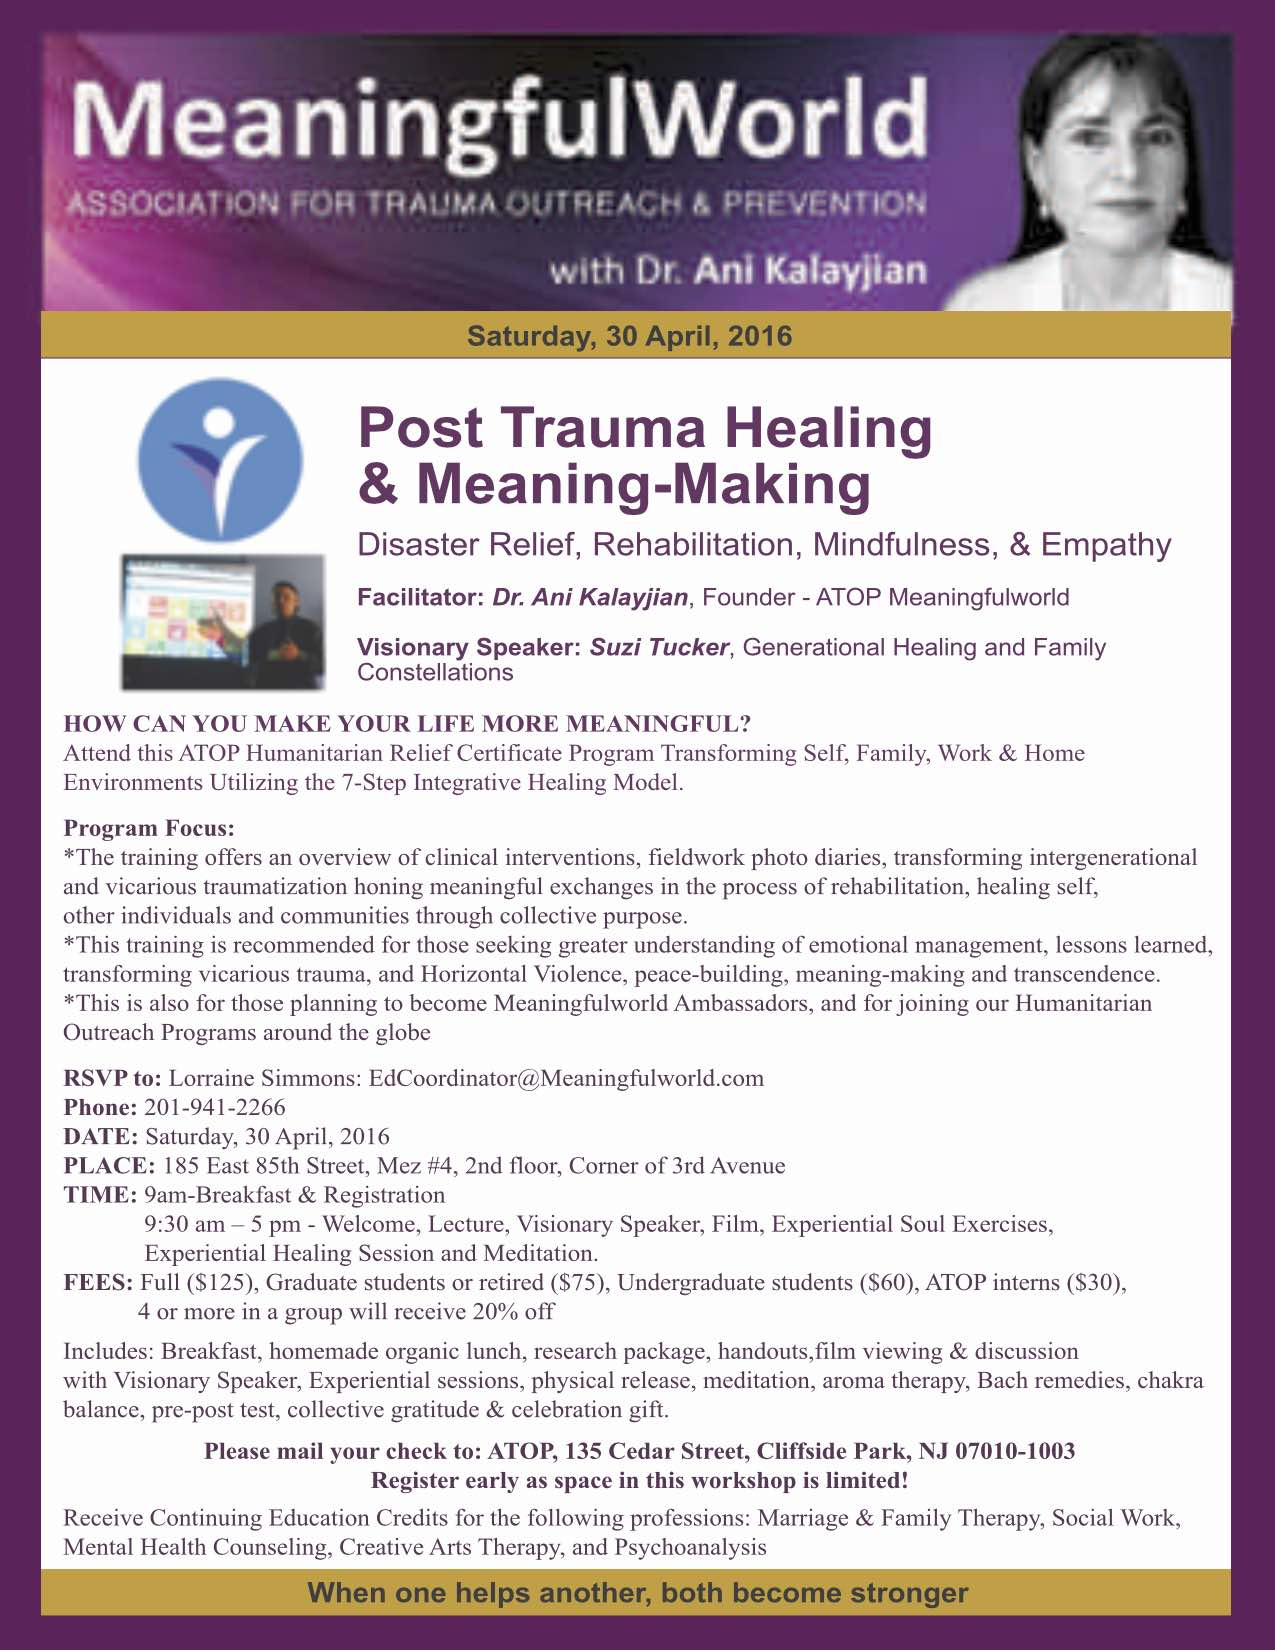 Meaningfulworld PostTrauma Healing 30 April 2016